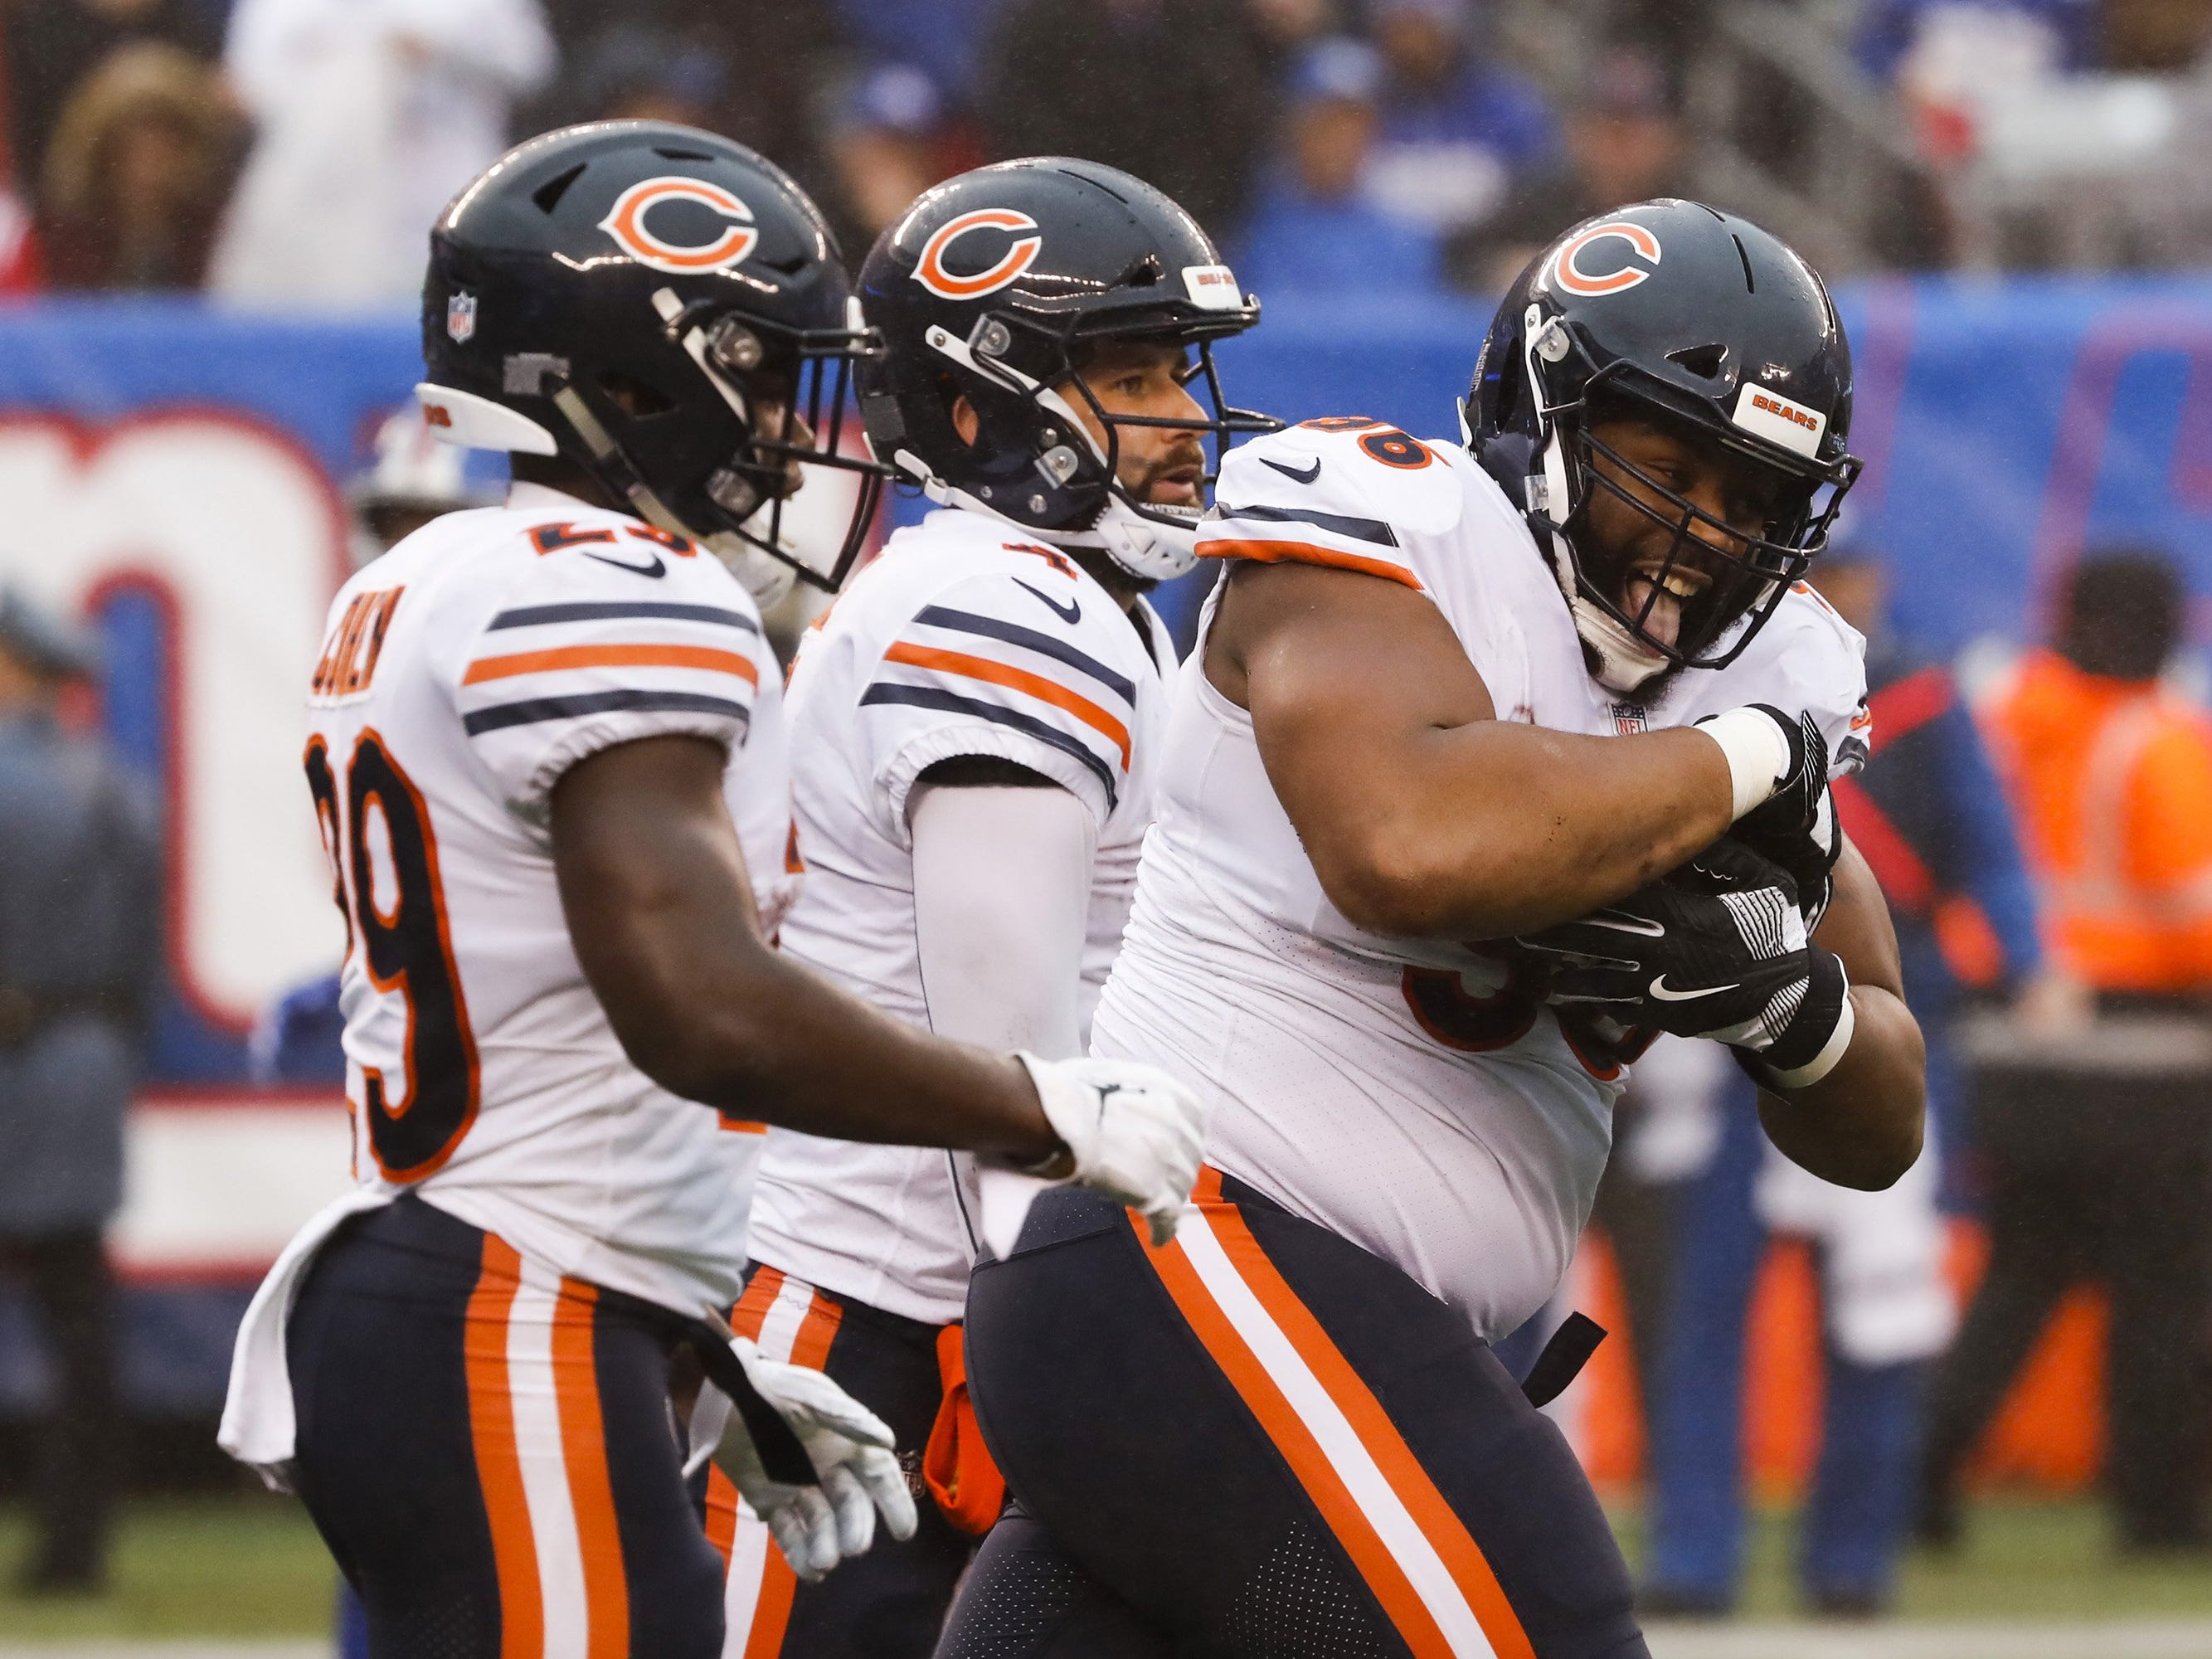 7. Bears (8-4) | Last game: Lost to the Giants, 30-27 | Previous ranking: 5 | The buzz: Can Khalil Mack and the Bears do to the Rams what Dallas did to New Orleans last week?